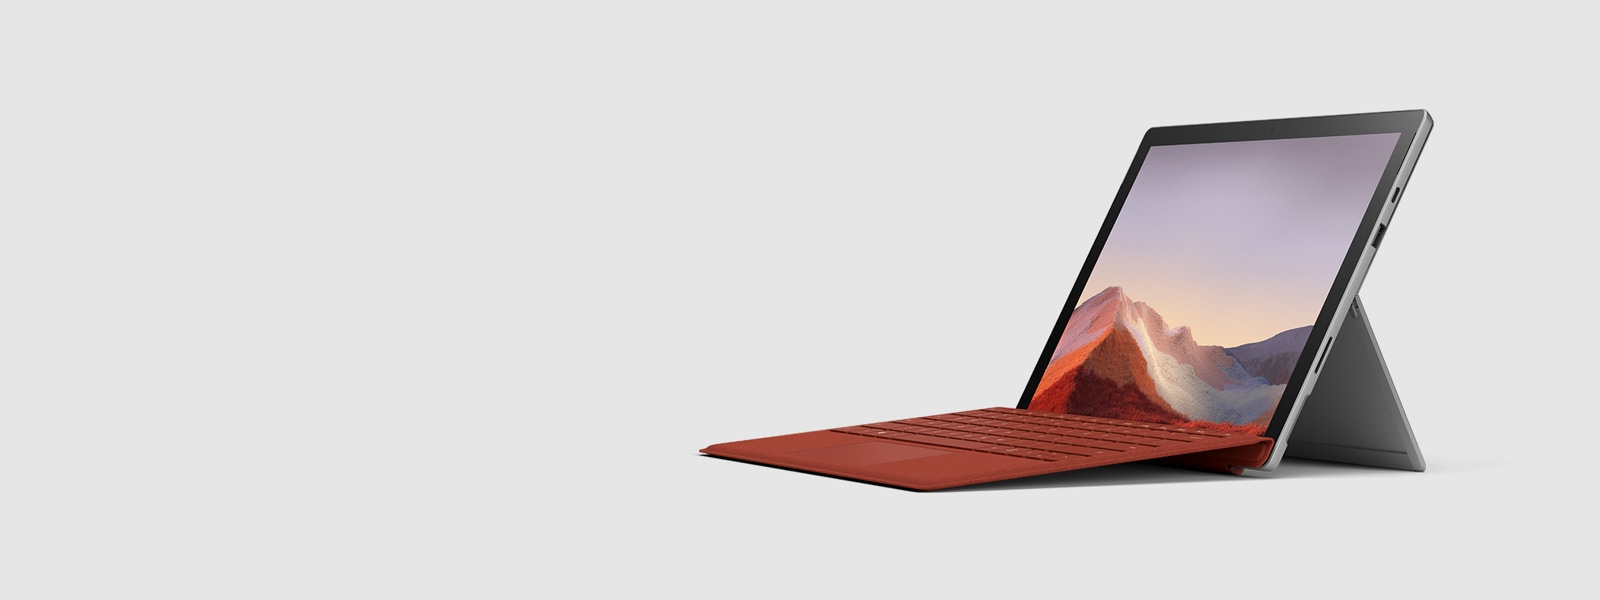 Ordinateur hybride Surface Pro 7 avec son clavier Type Cover